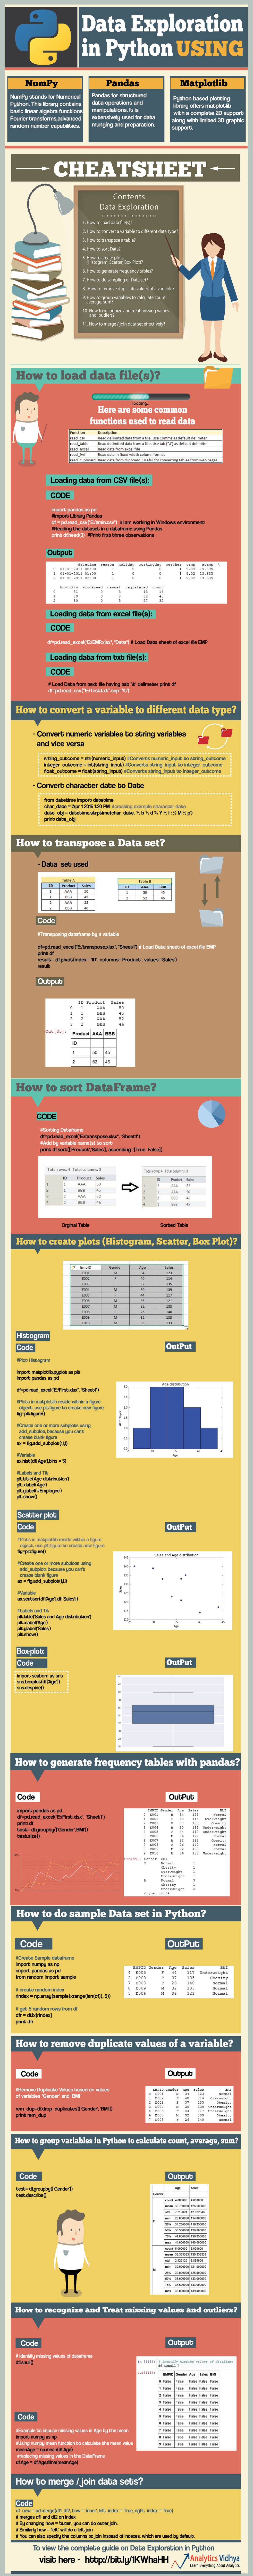 infographics on data exploration in python